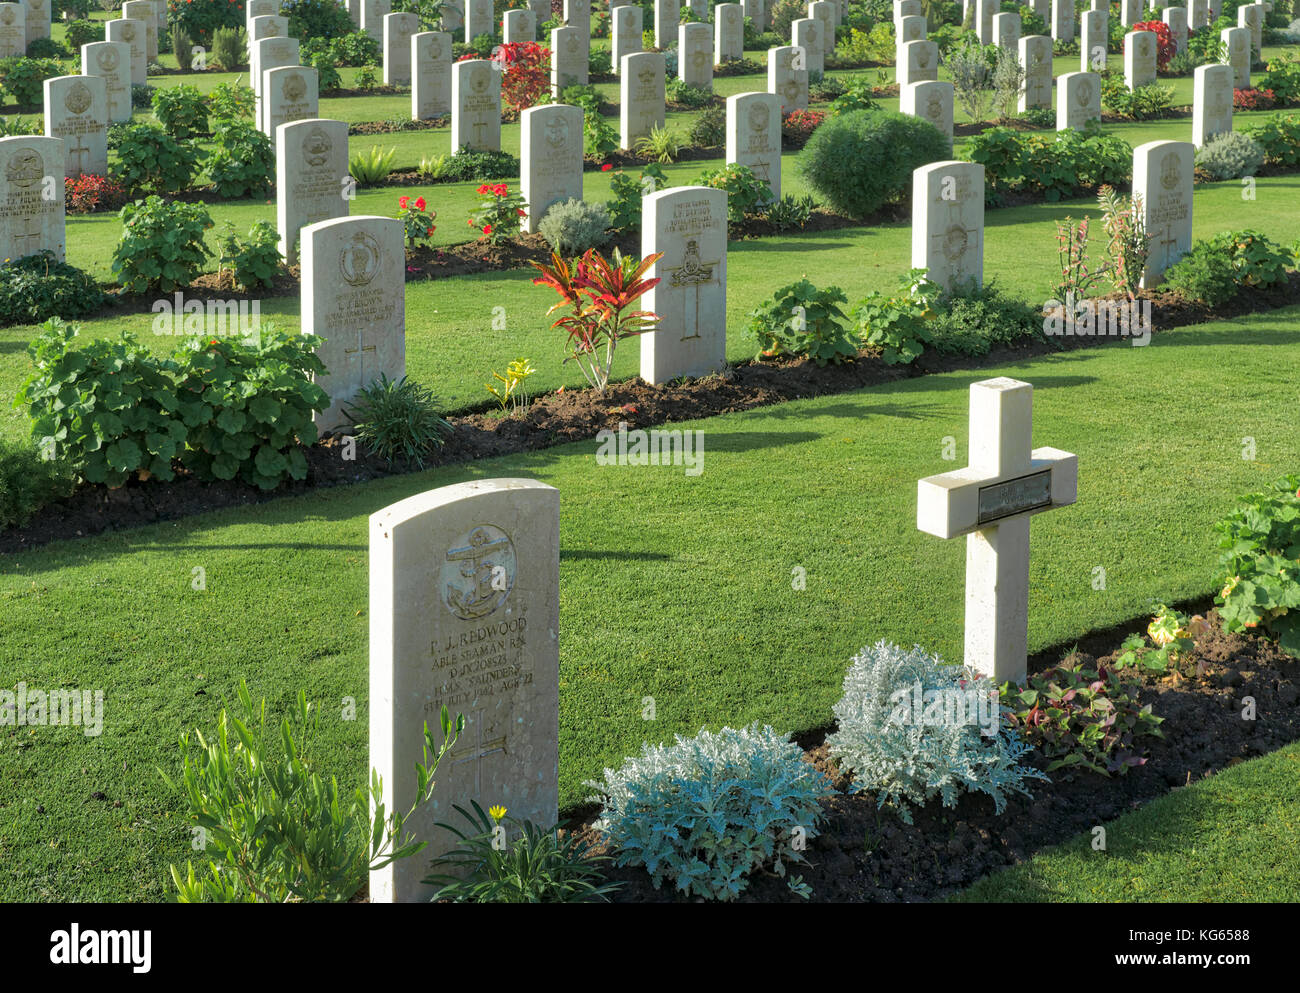 Cairo, Egypt - December 7, 2016: Heliopolis Commonwealth War Cemetery, contains 1742 burials of the Second World - Stock Image